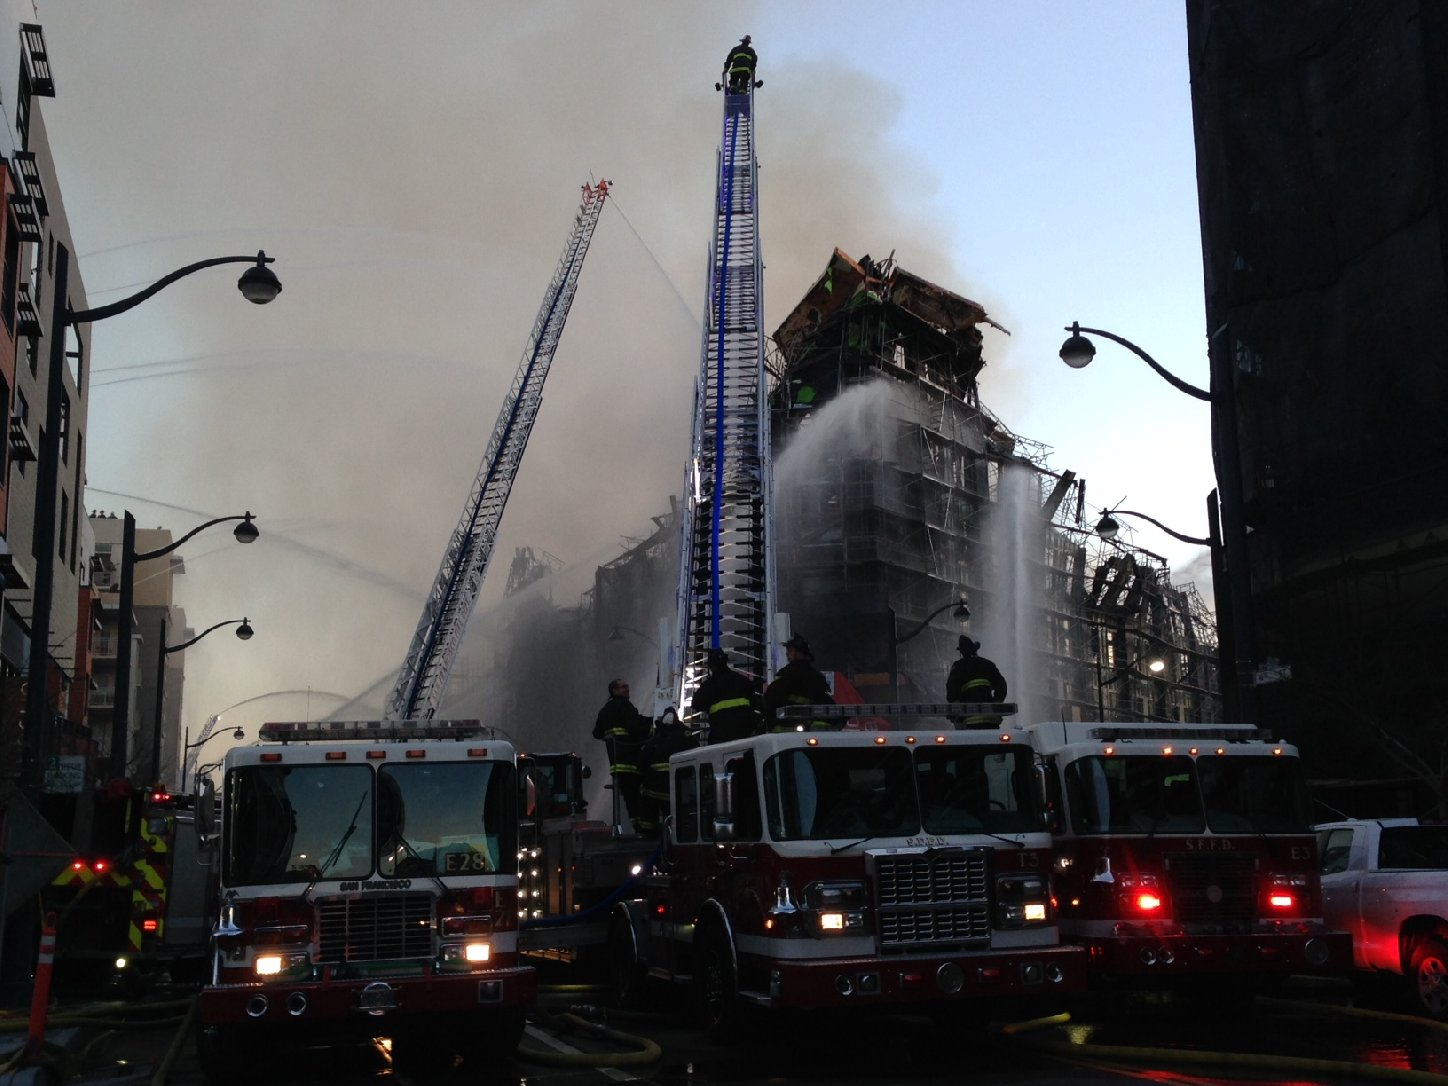 Firefighters work to contain a five-alarm fire in China Basin. (Charla Bear/KQED)